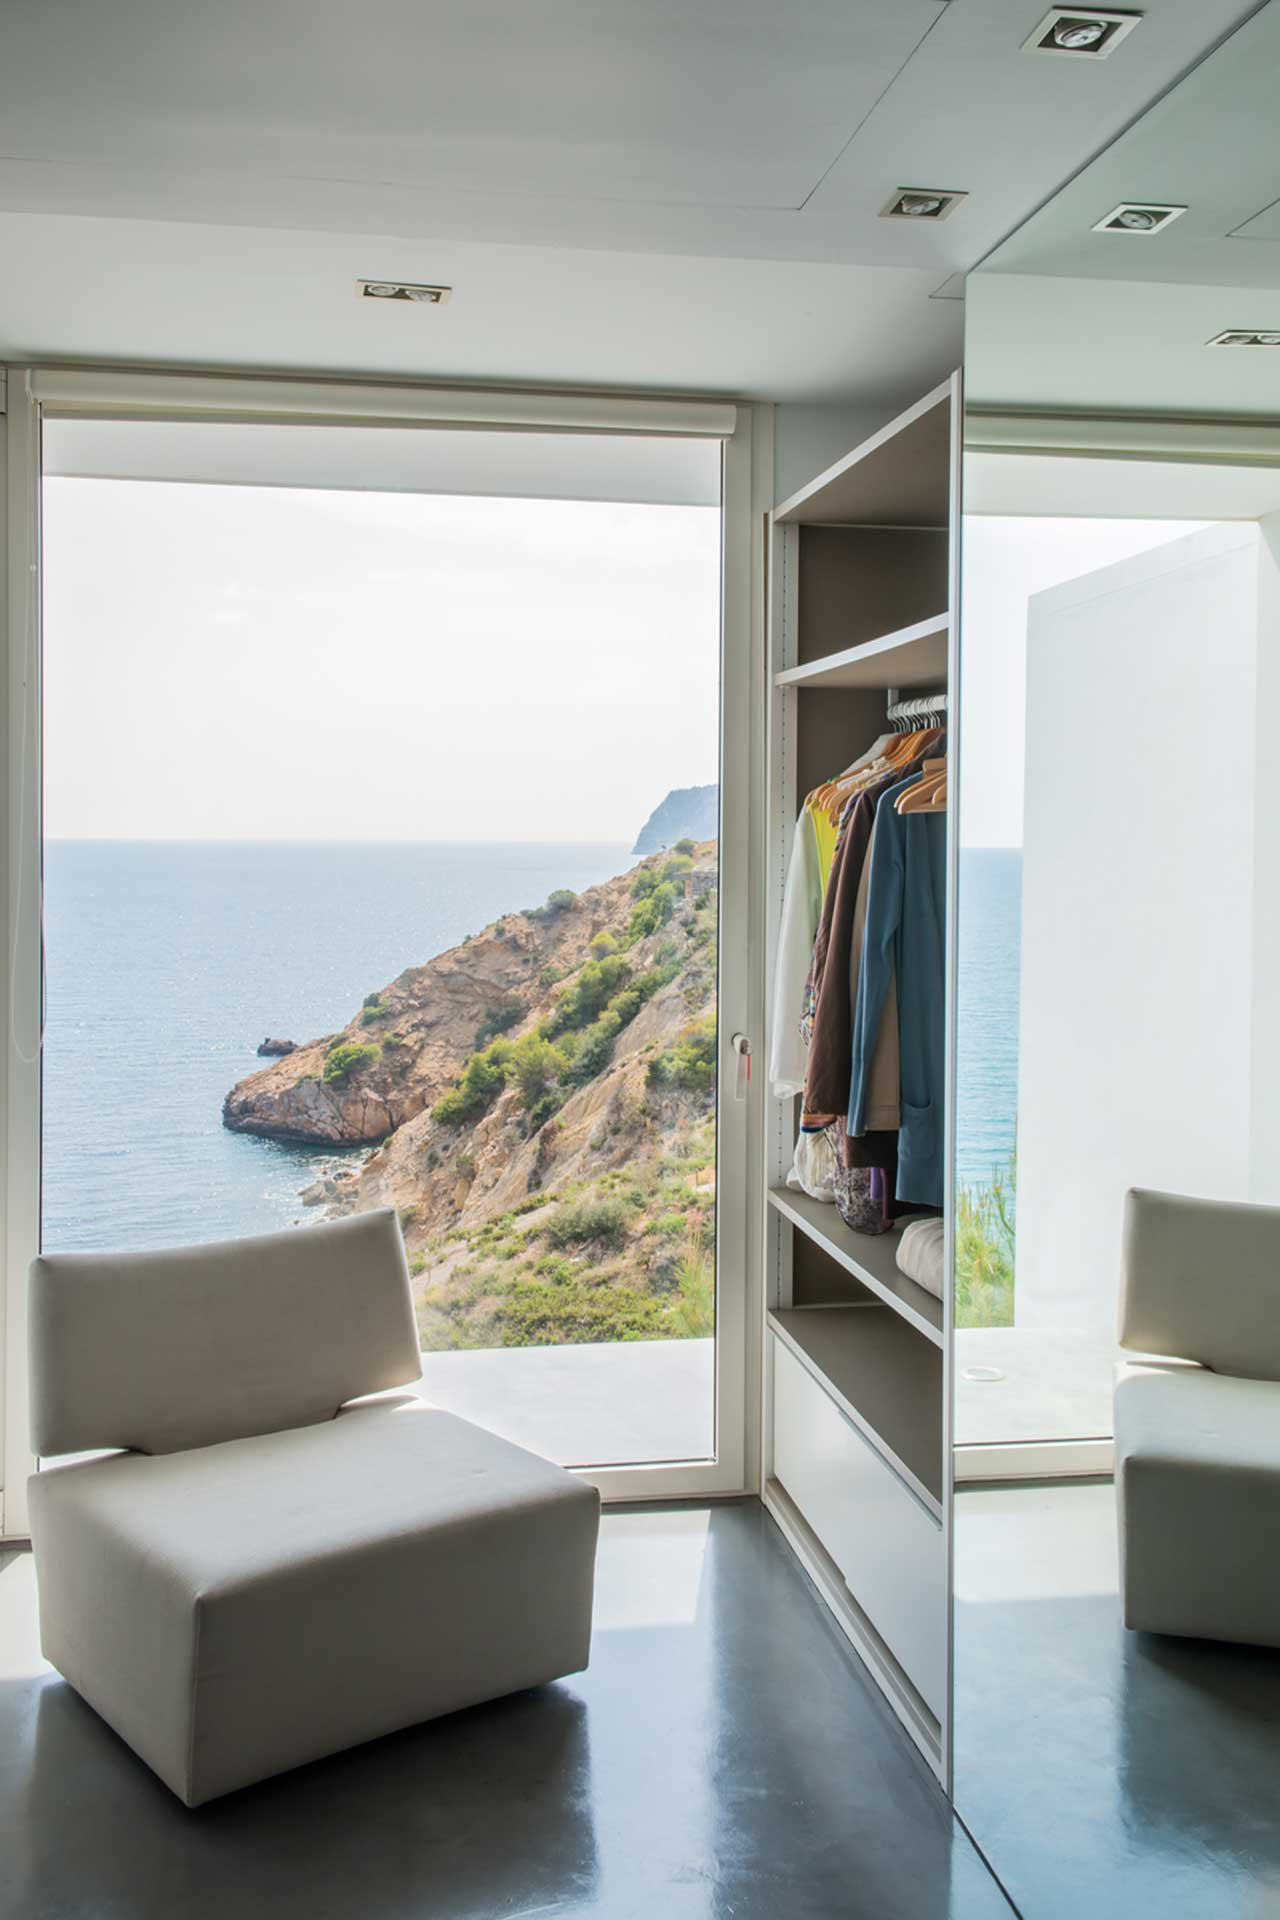 Villa Infinty Ibiza Vista Alegre - Master-Suite with dressing room